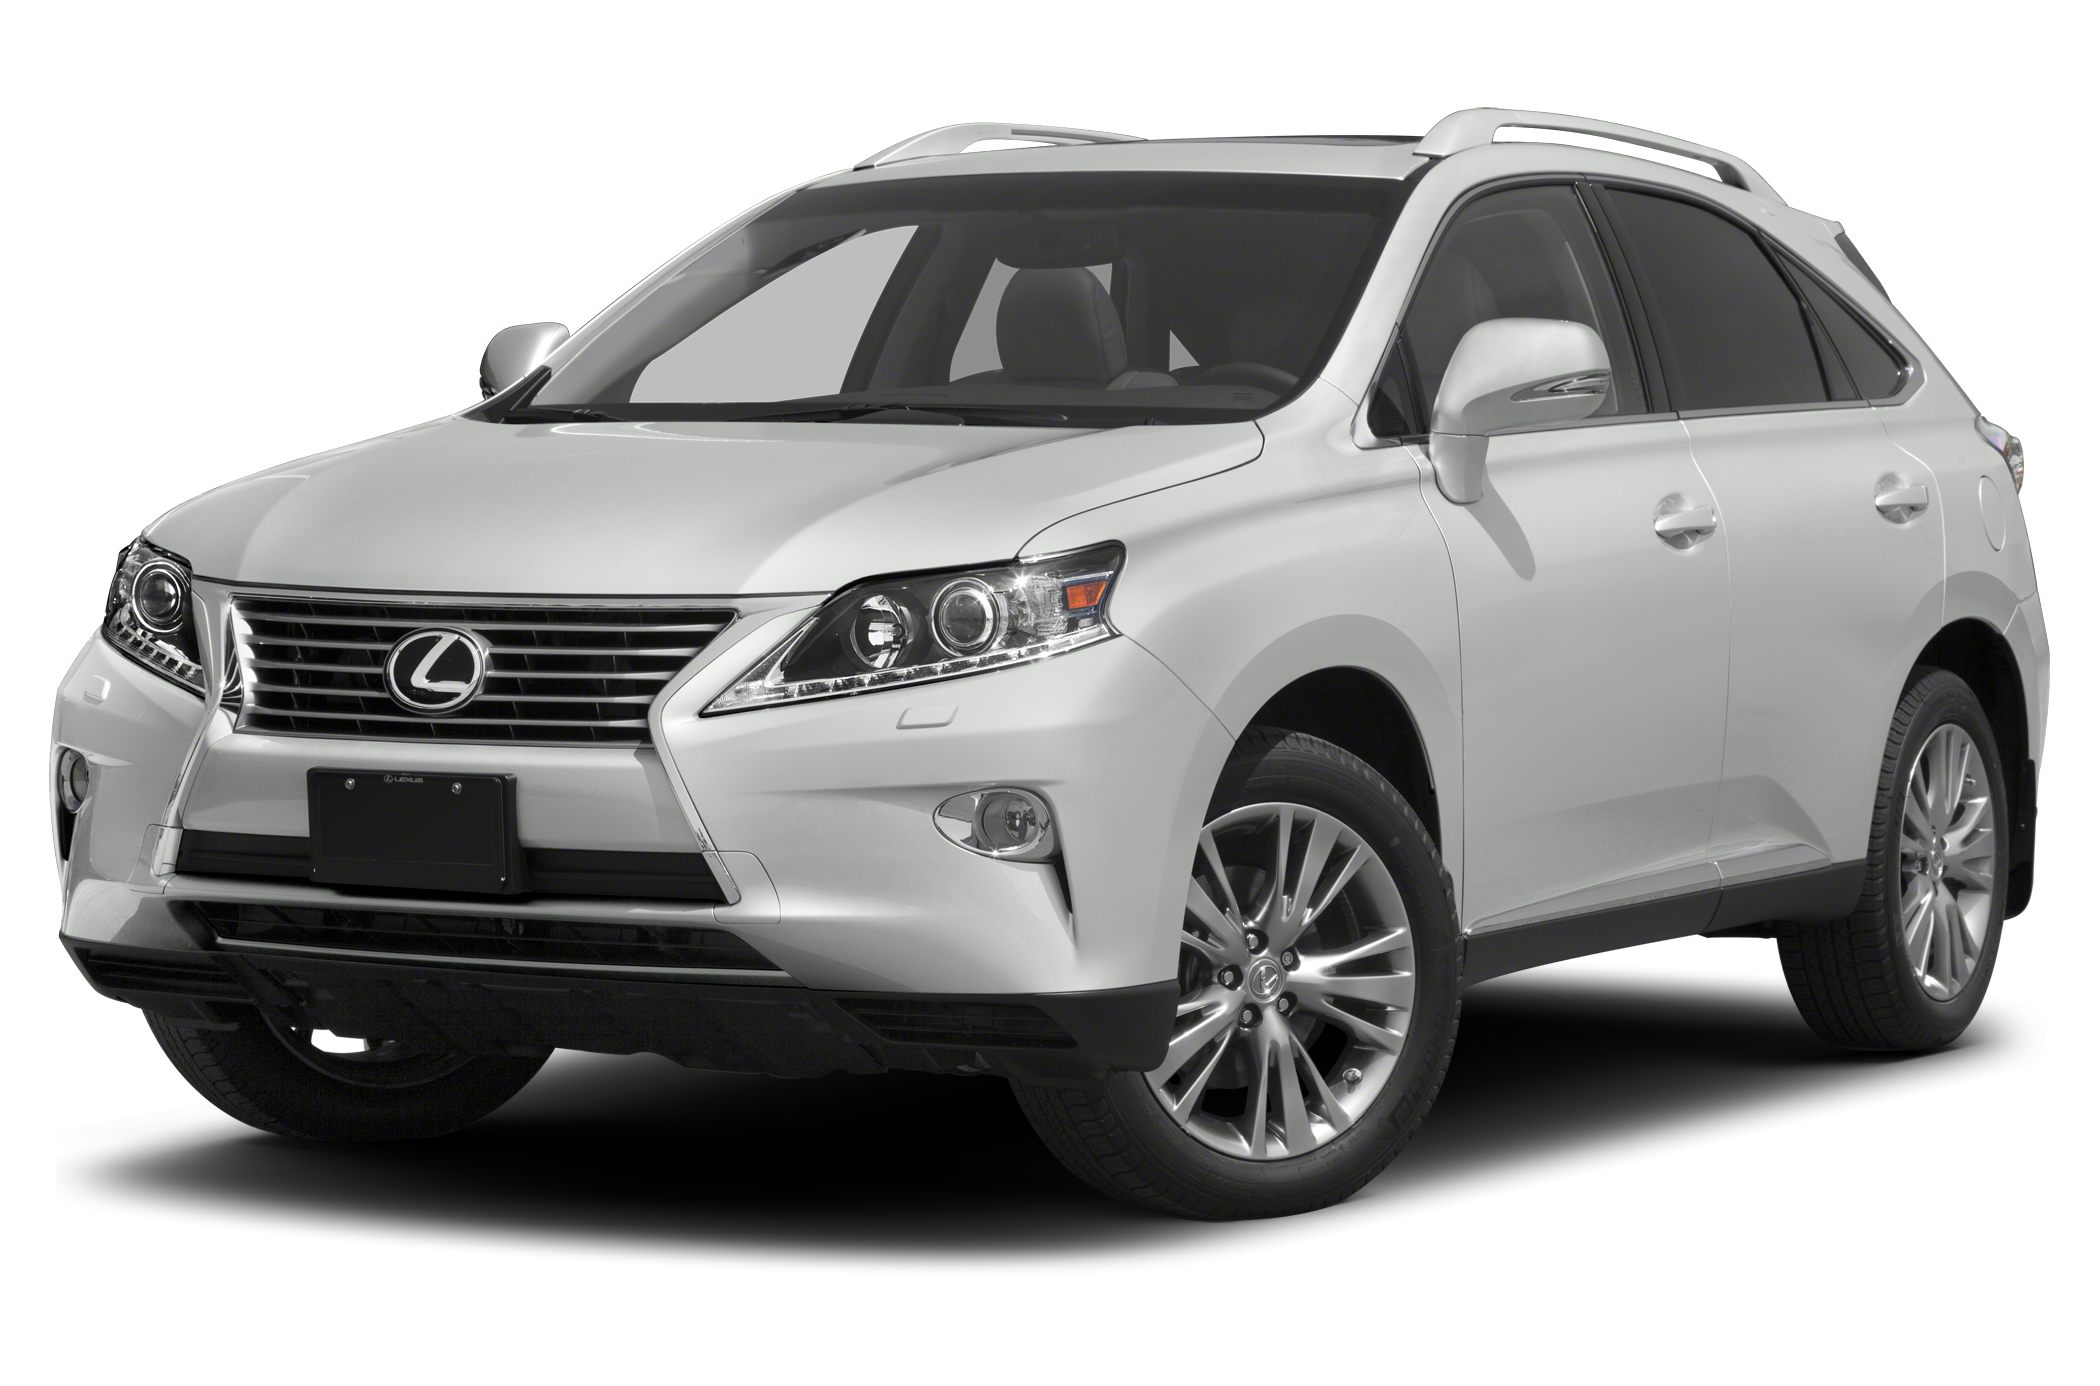 2013 Lexus RX 350 Base 4dr All wheel Drive Information